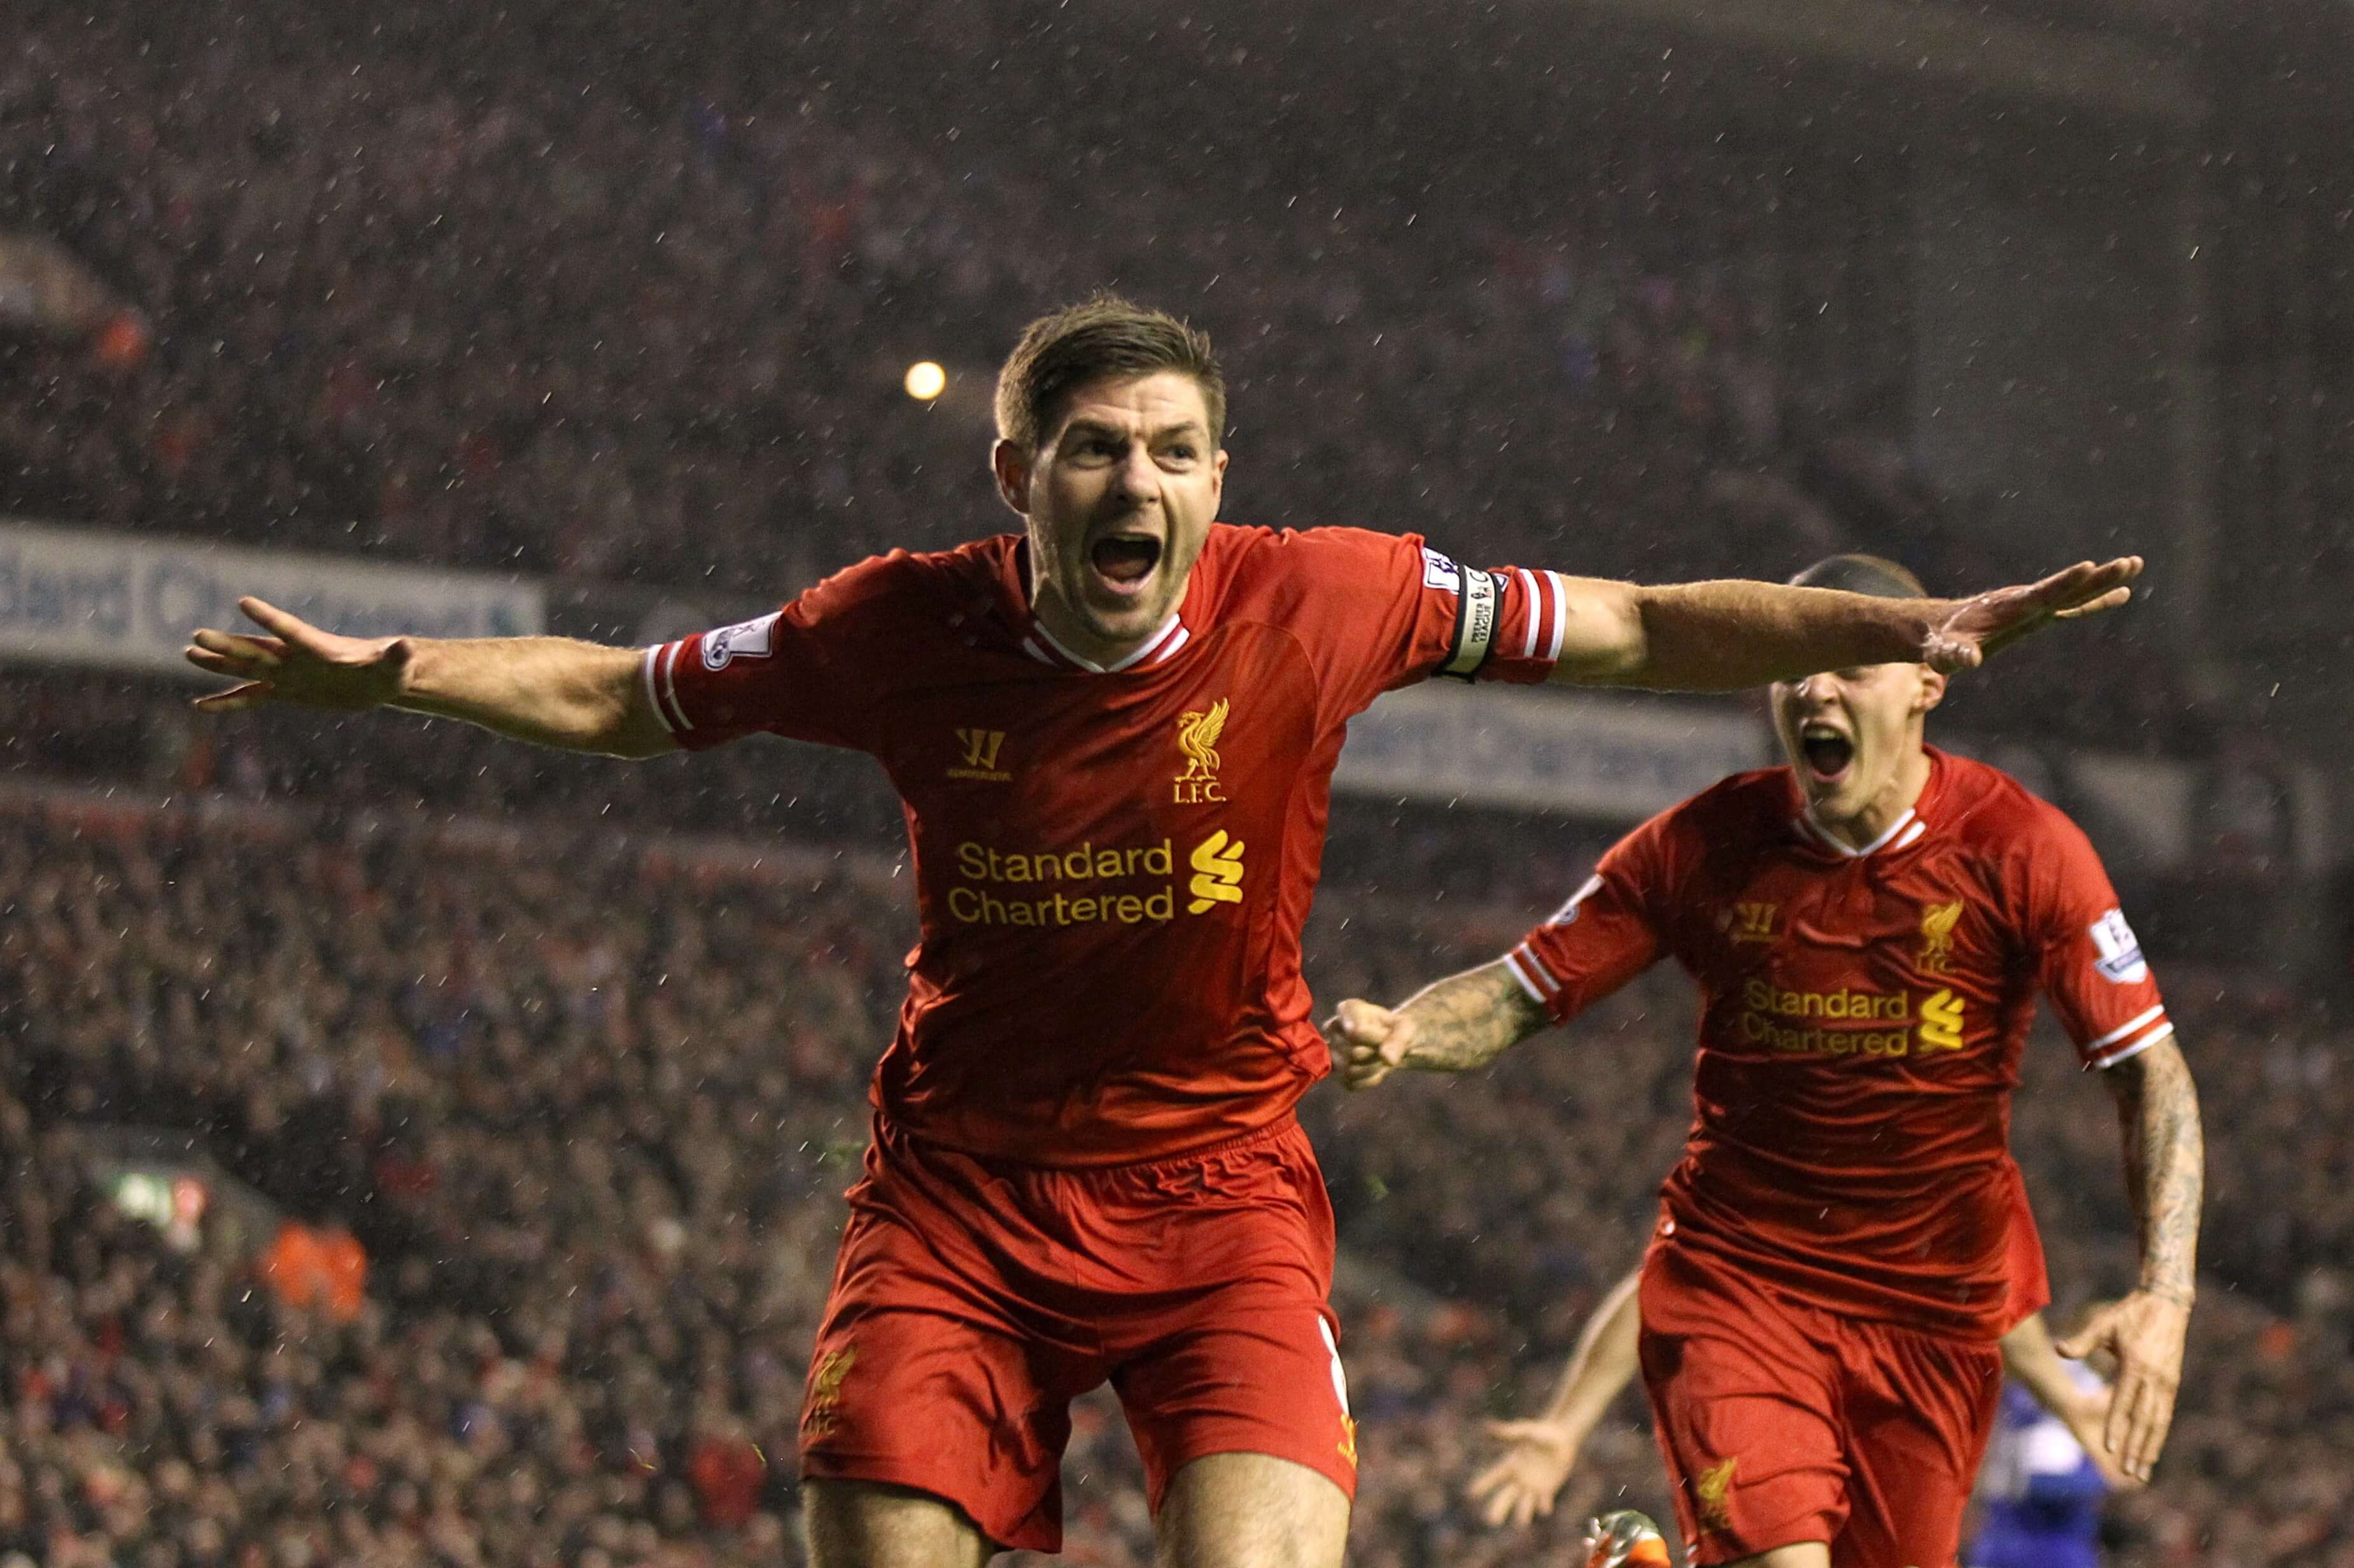 Liverpool 4-0 Everton: The Derby that spurred on a title challenge